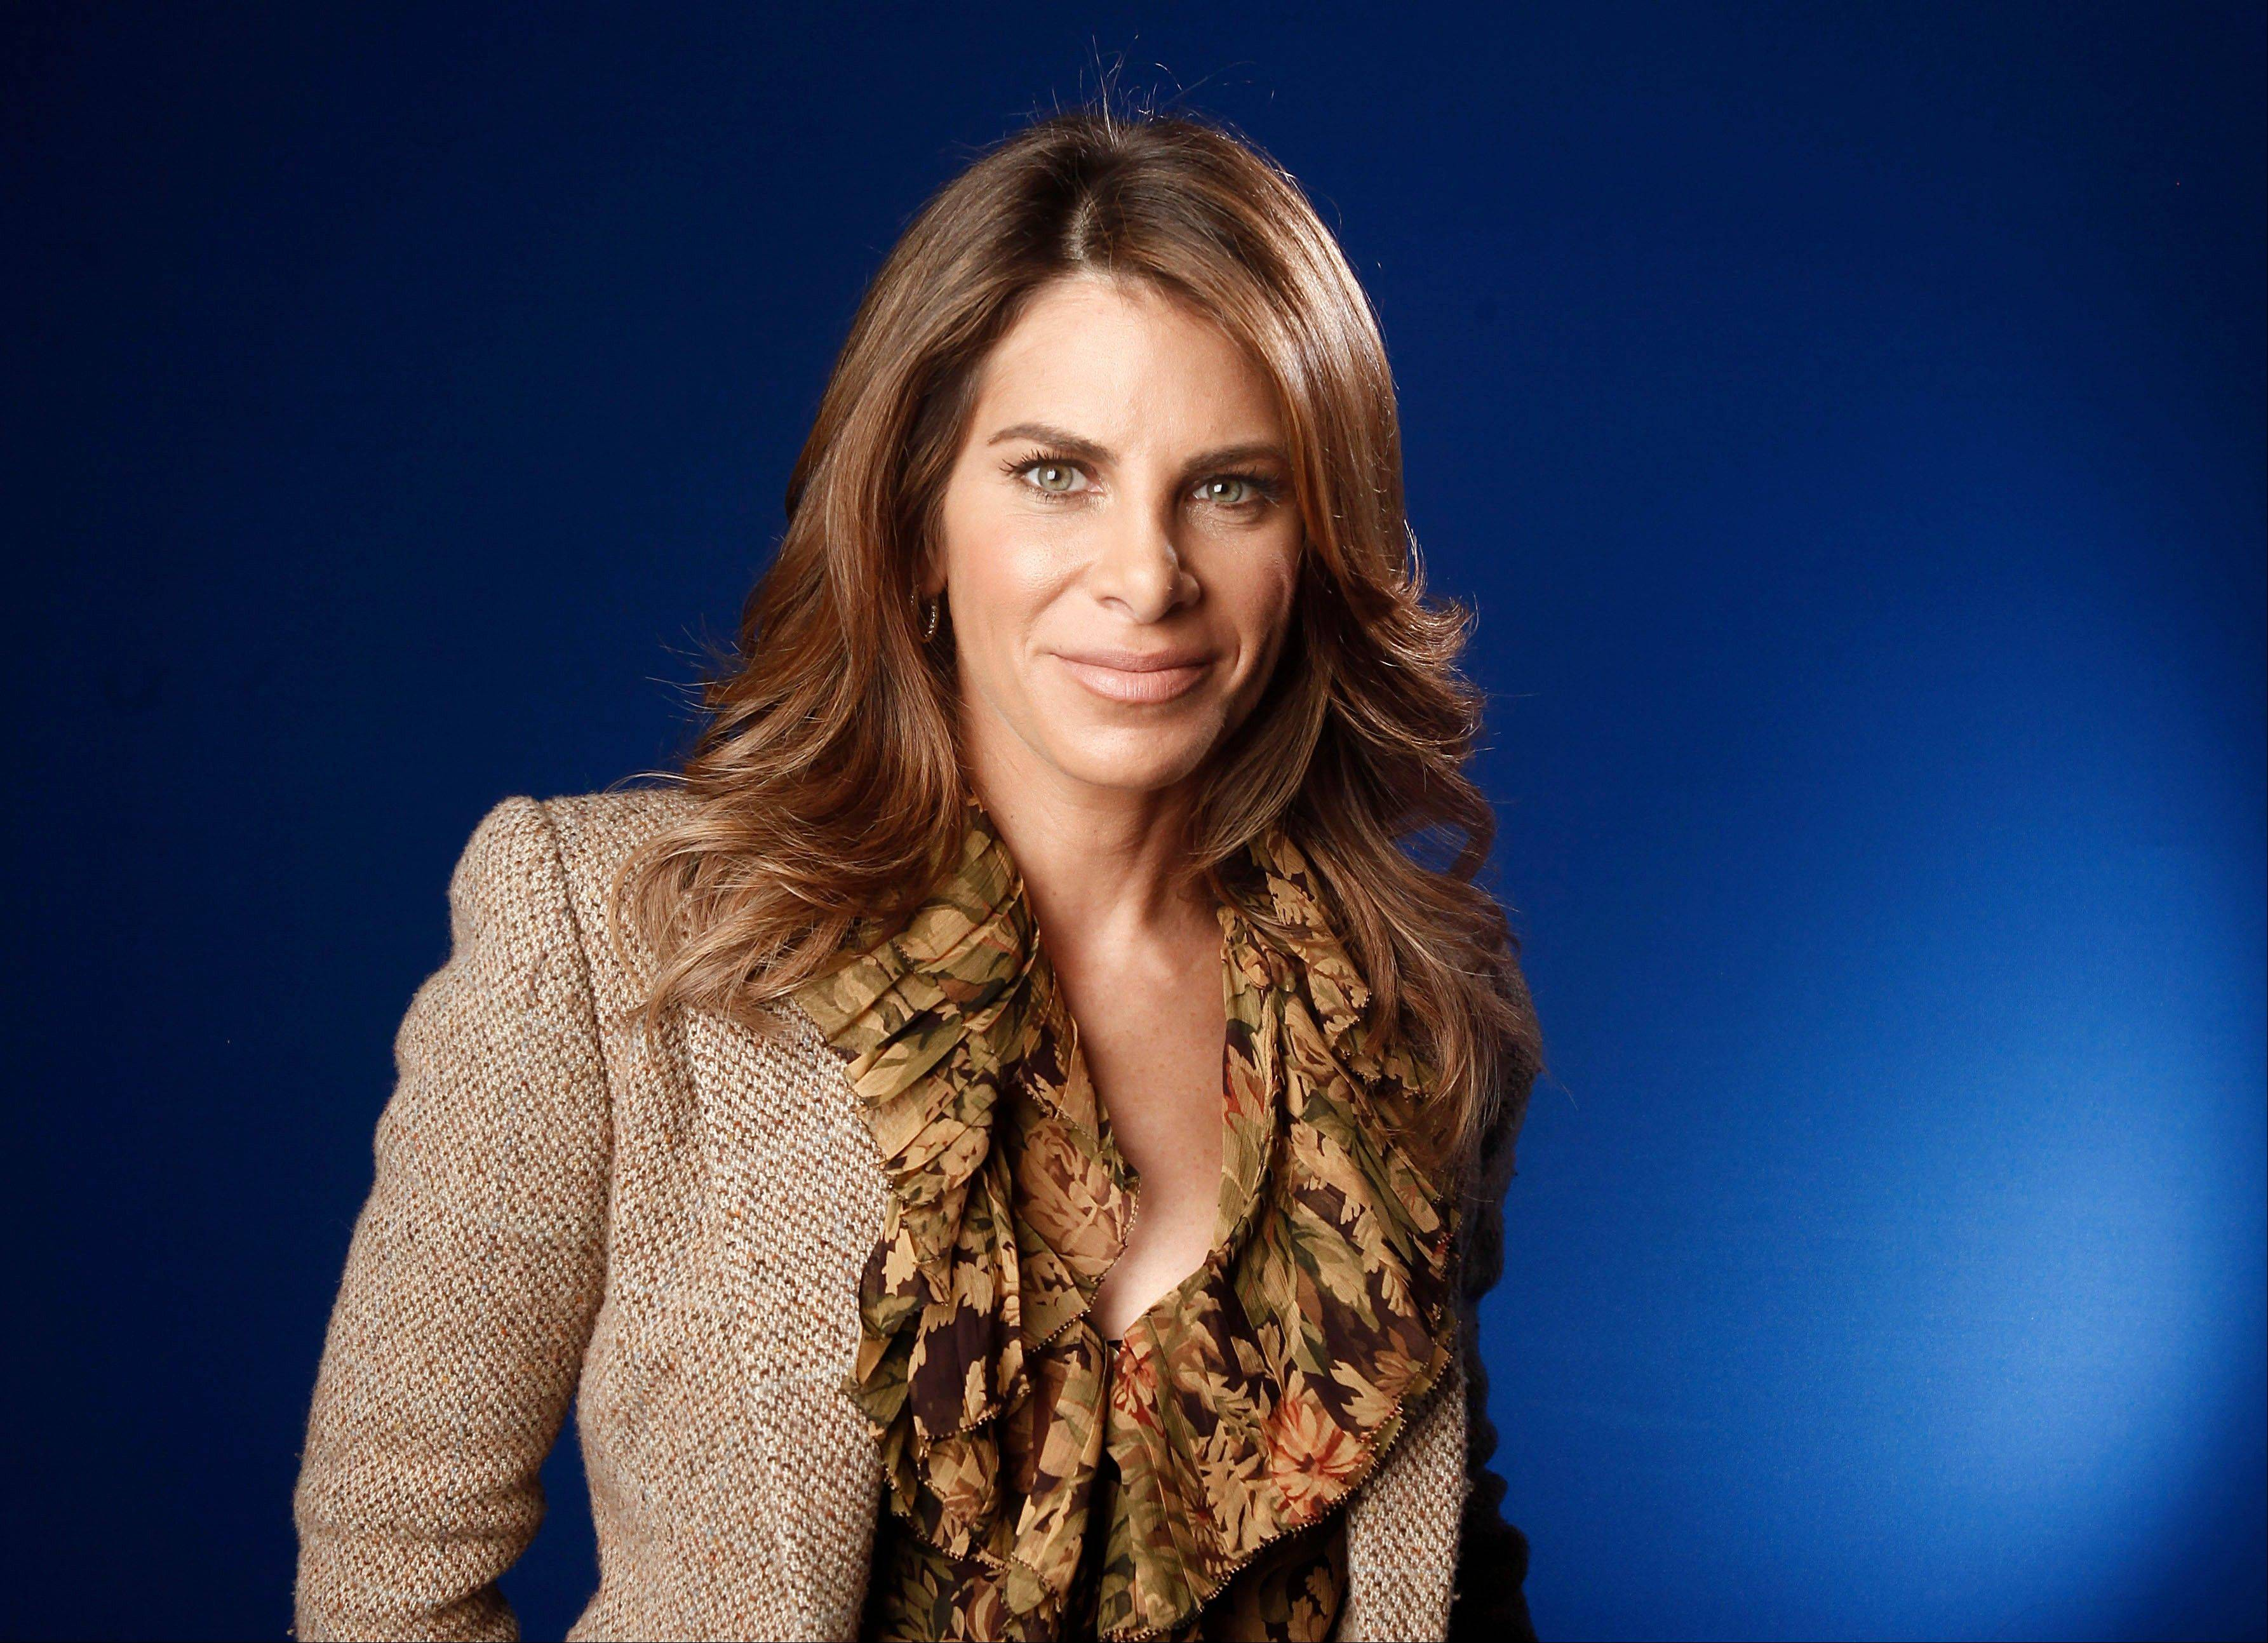 Jillian Michaels, a fitness coach on NBC�s �The Biggest Loser,� has a new book, �Slim for Life: My Insider Secrets to Simple, Fast and Lasting Weight Loss.�